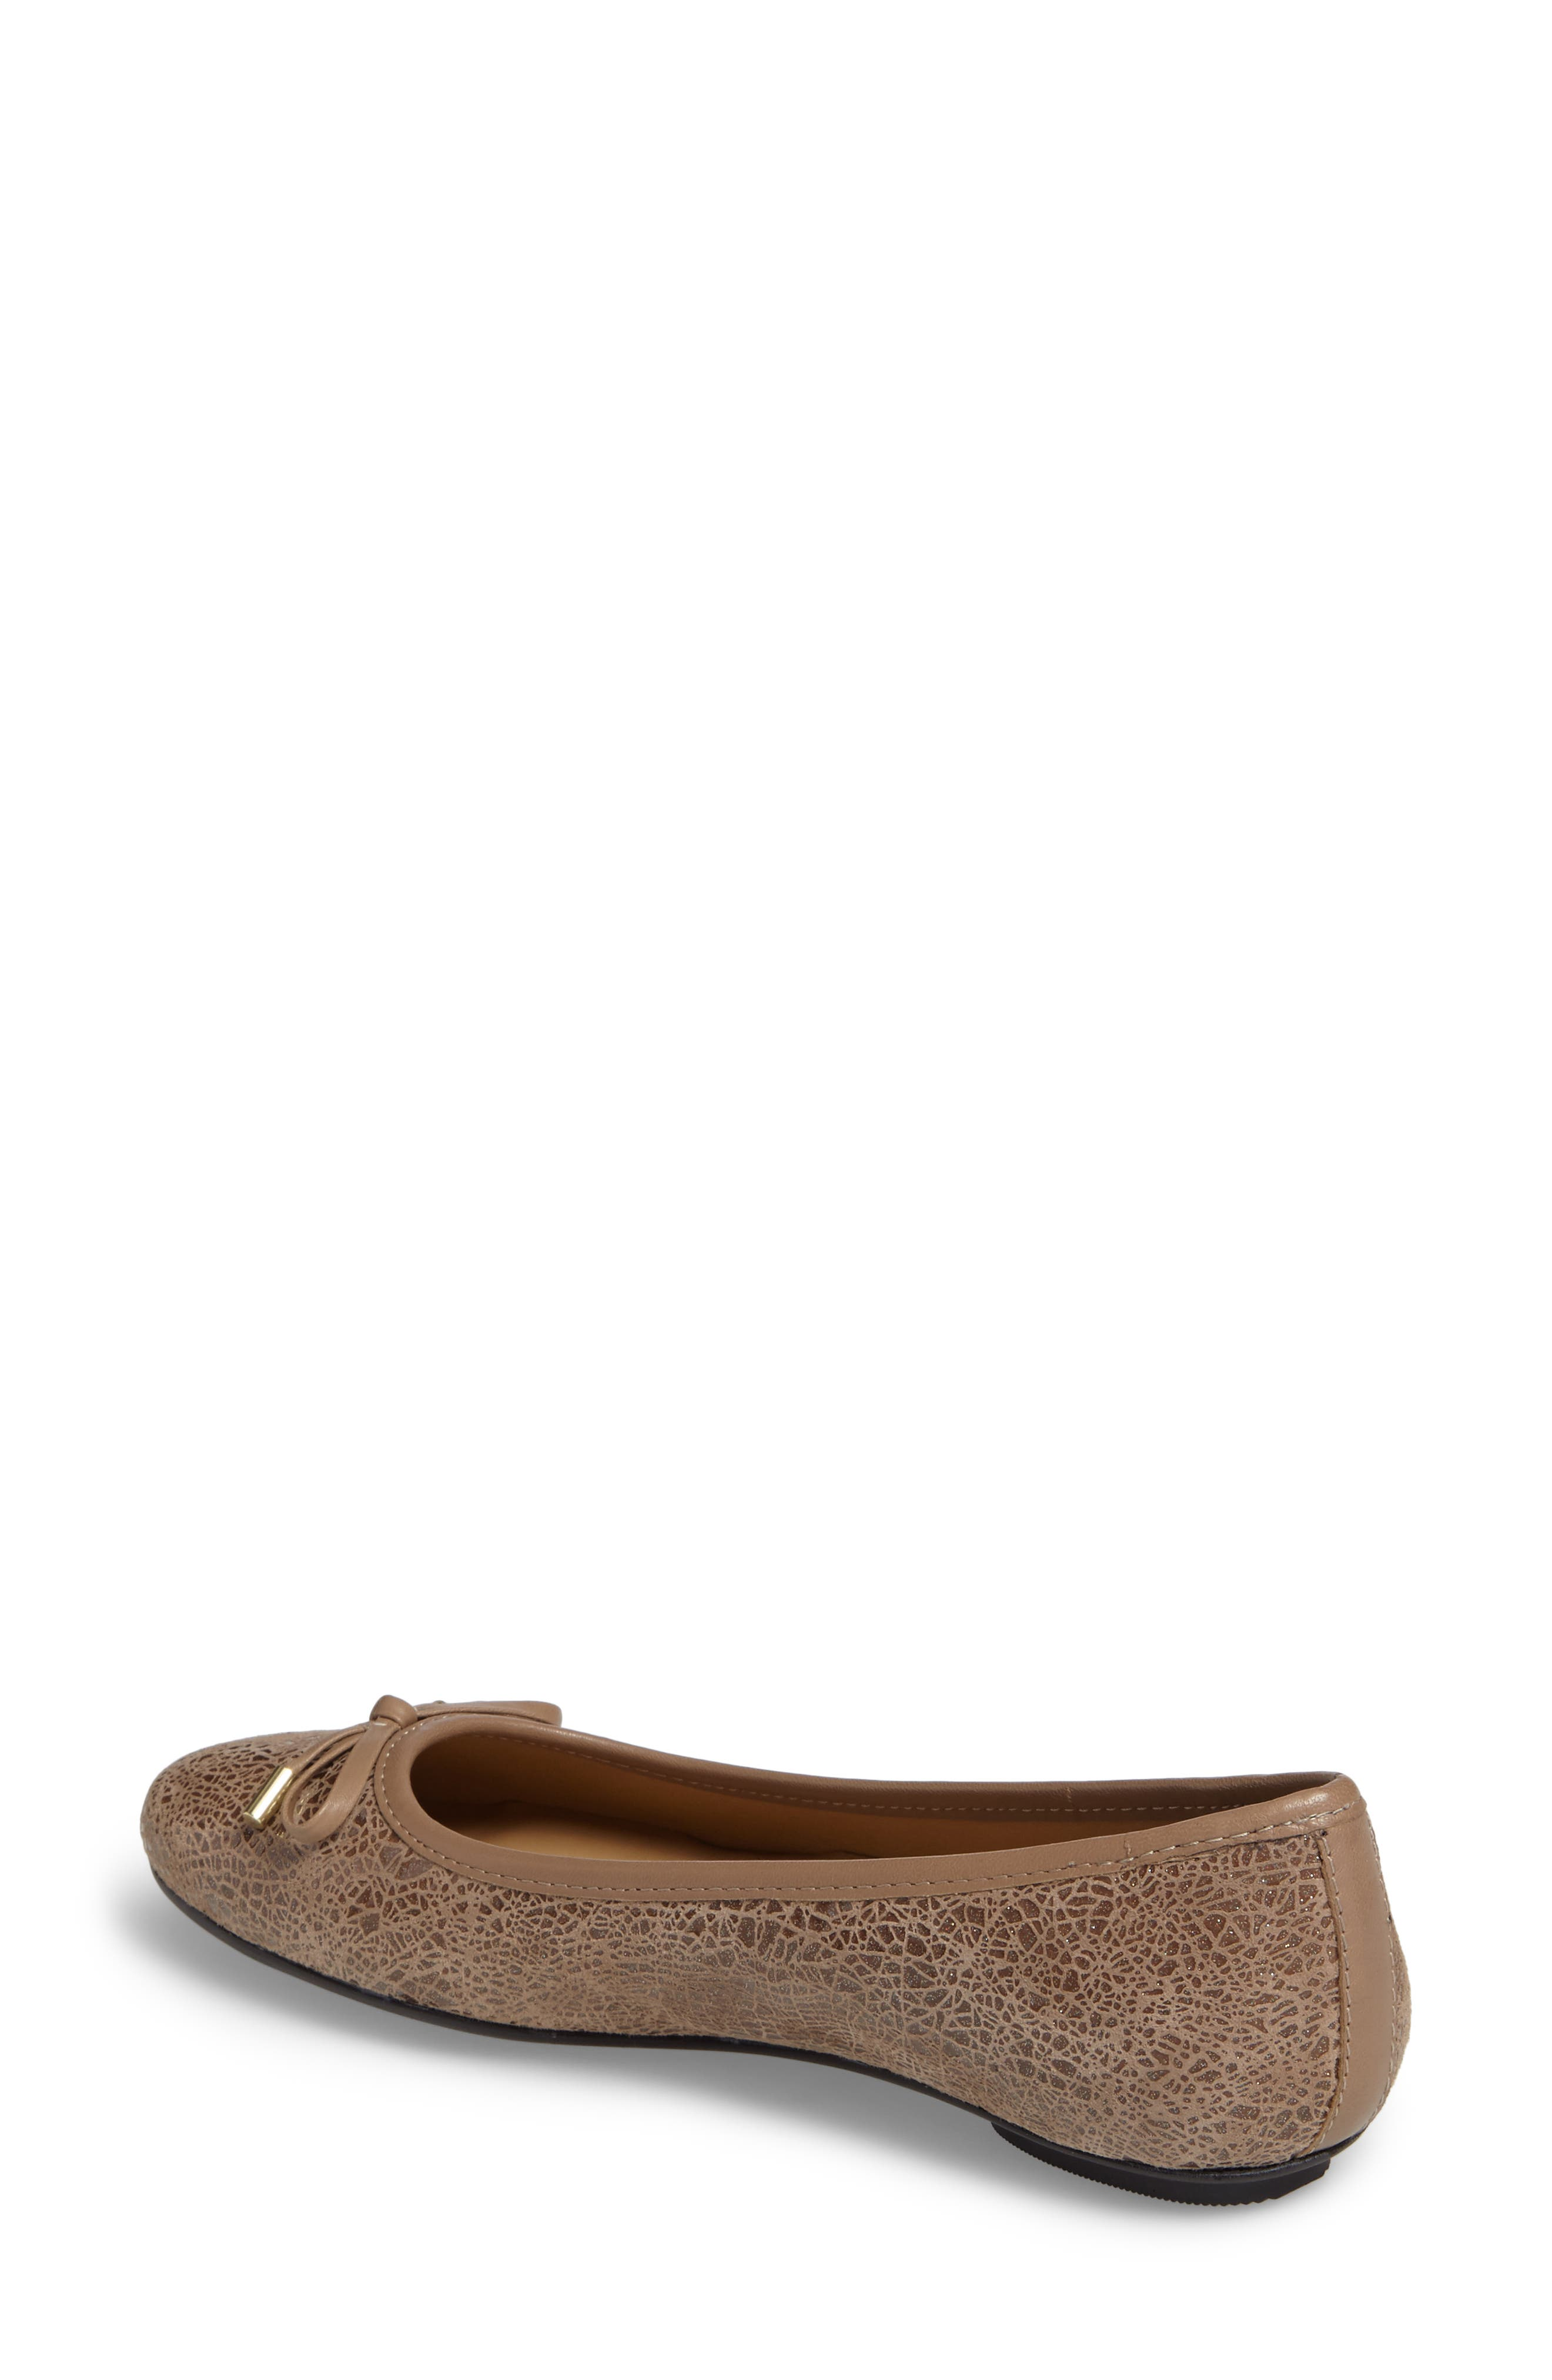 'Signy' Ballet Flat,                             Alternate thumbnail 2, color,                             Taupe Print Leather